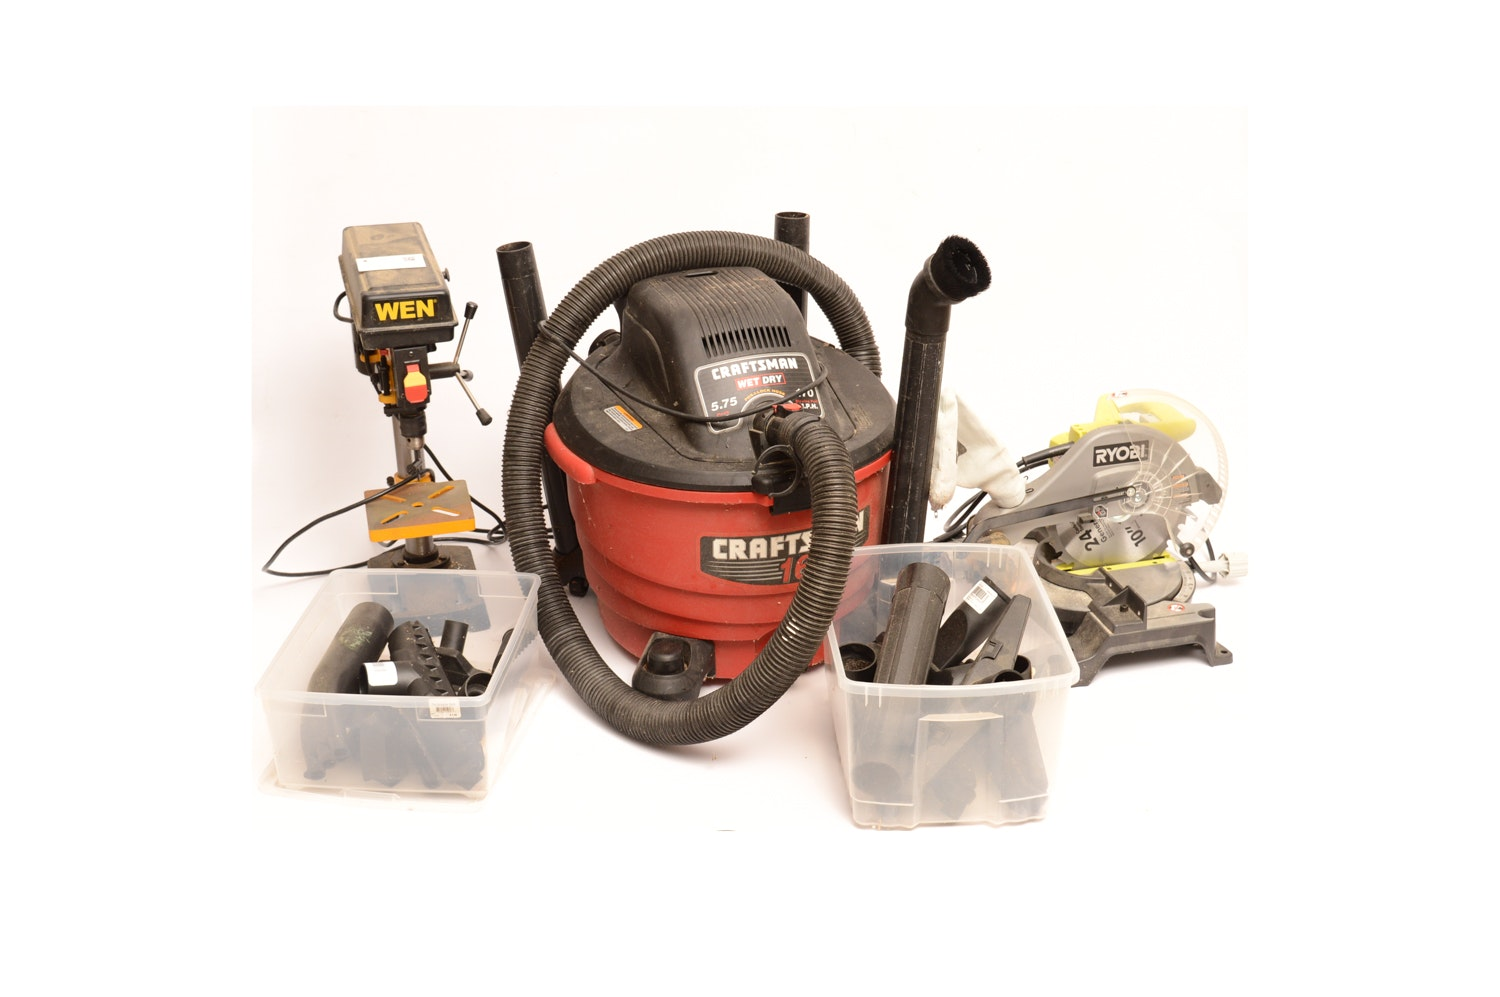 "Craftsman 16 Gal Shop Vac, Ryobi 10"" Miter Saw and Wen Drill Press"